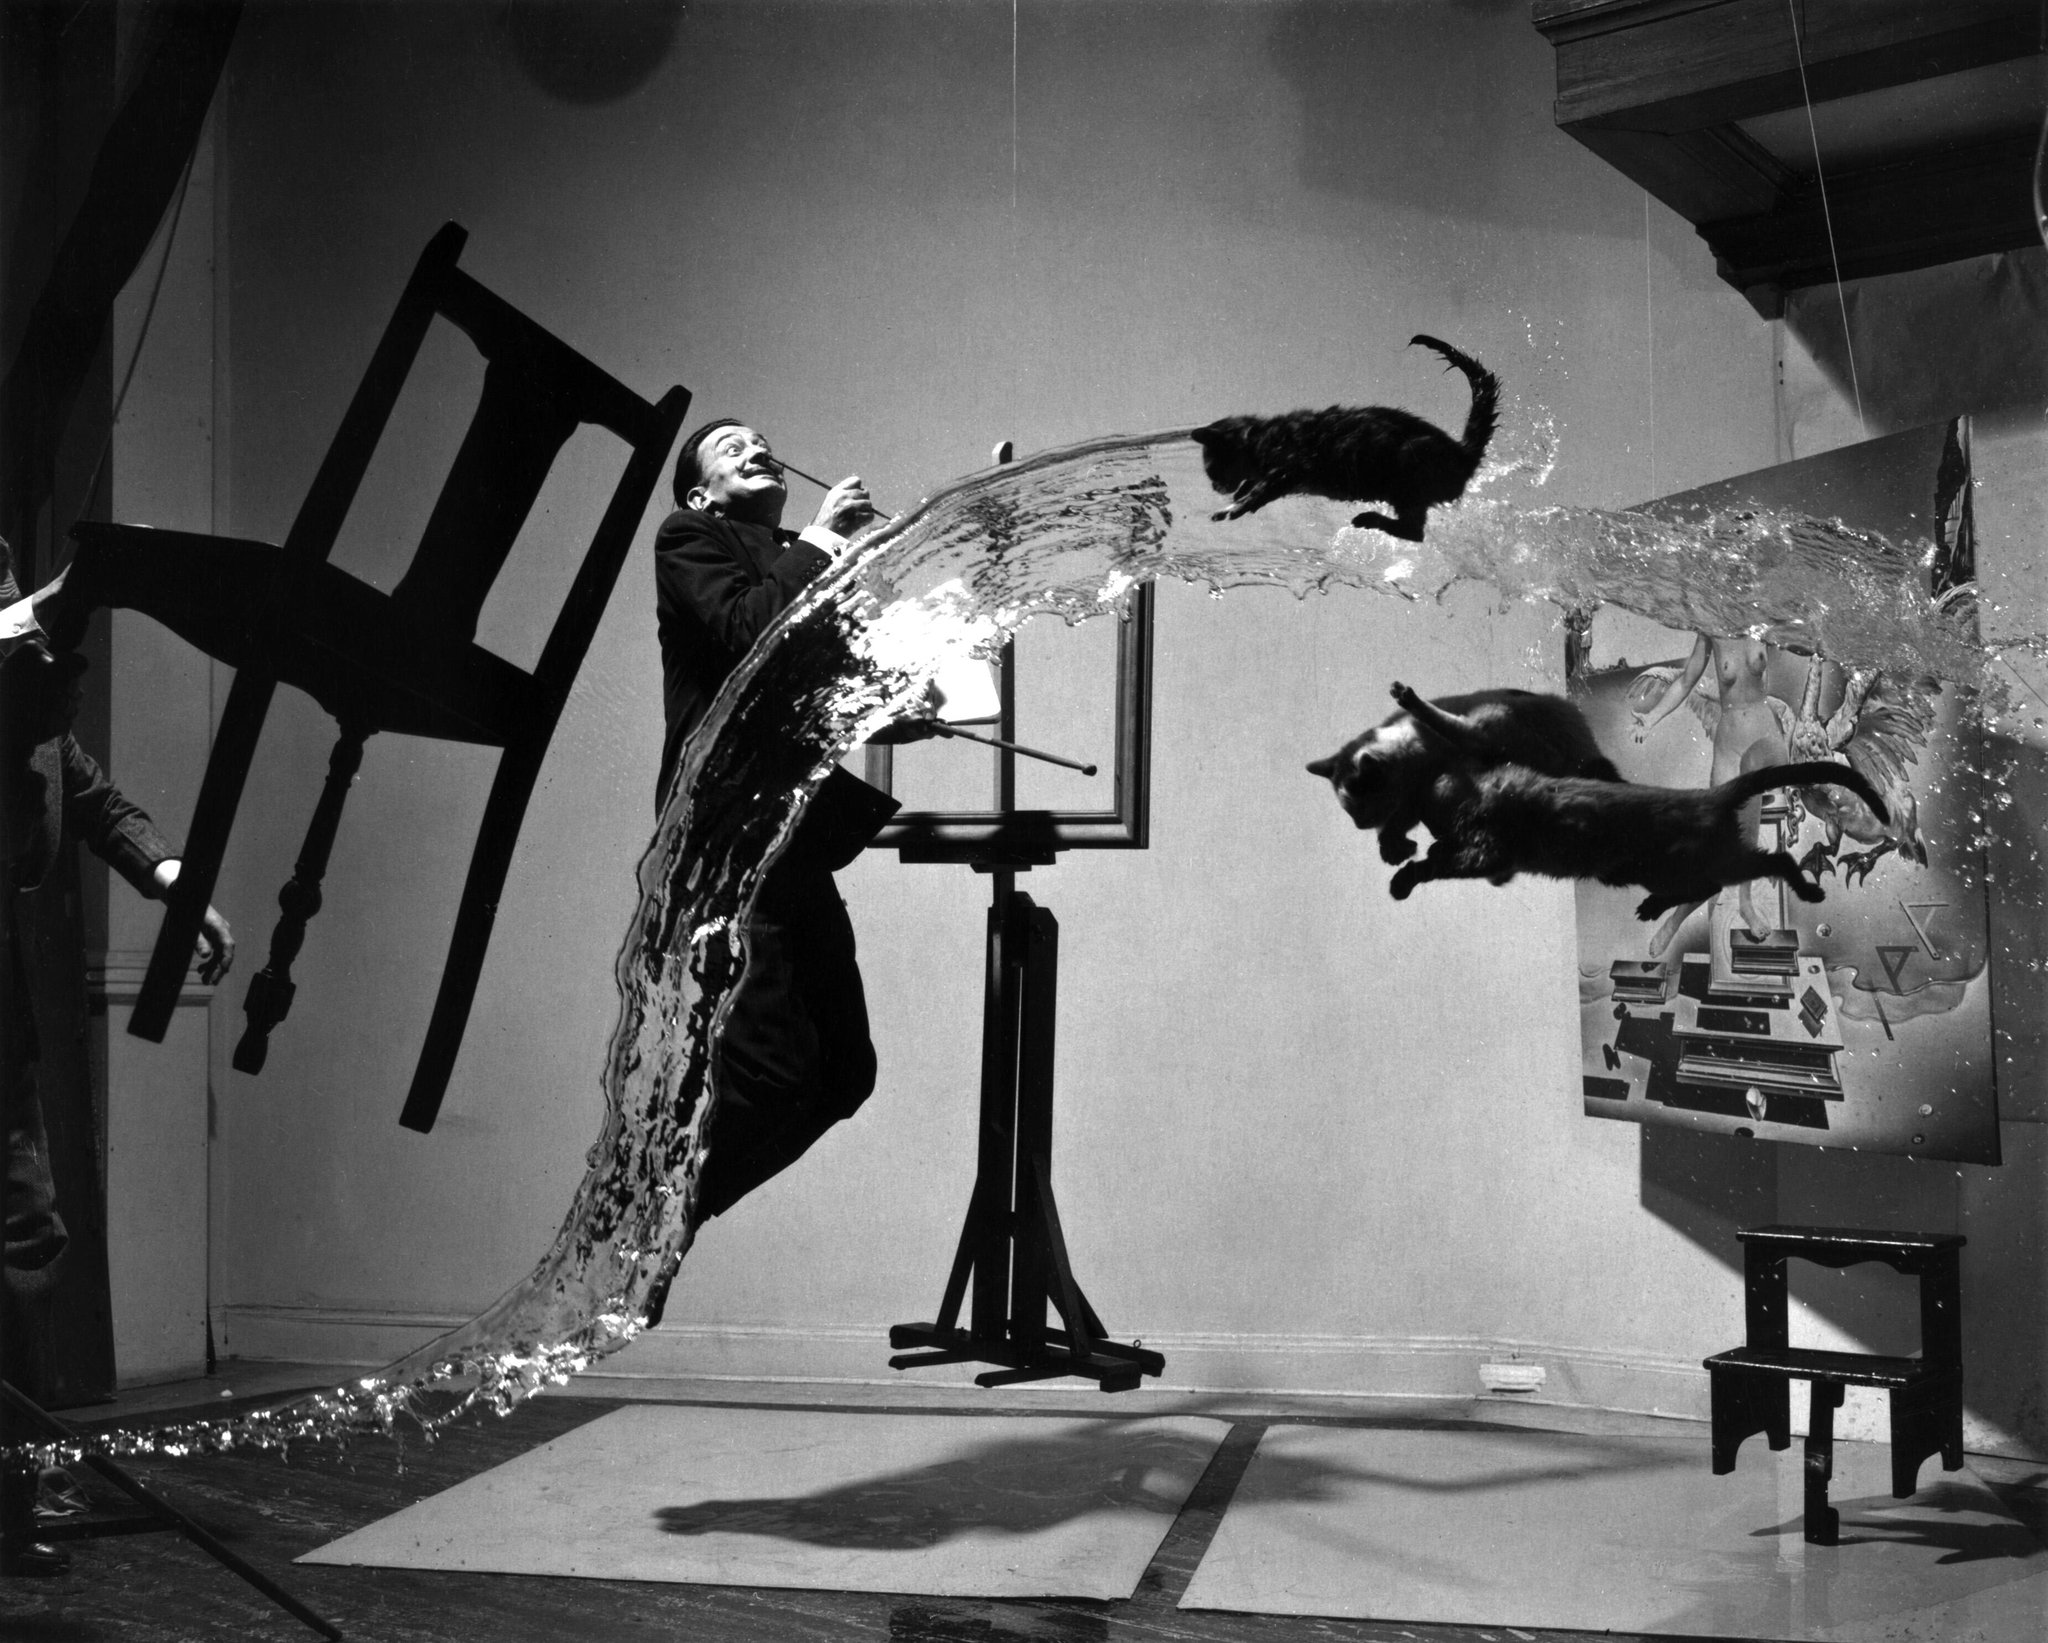 Salvador Dali in 'Dali Atomicus' by Philippe Halsman. It took 28 attempts to get this perfectly-timed shot, 1948. http://t.co/Z5HPeF4I2b